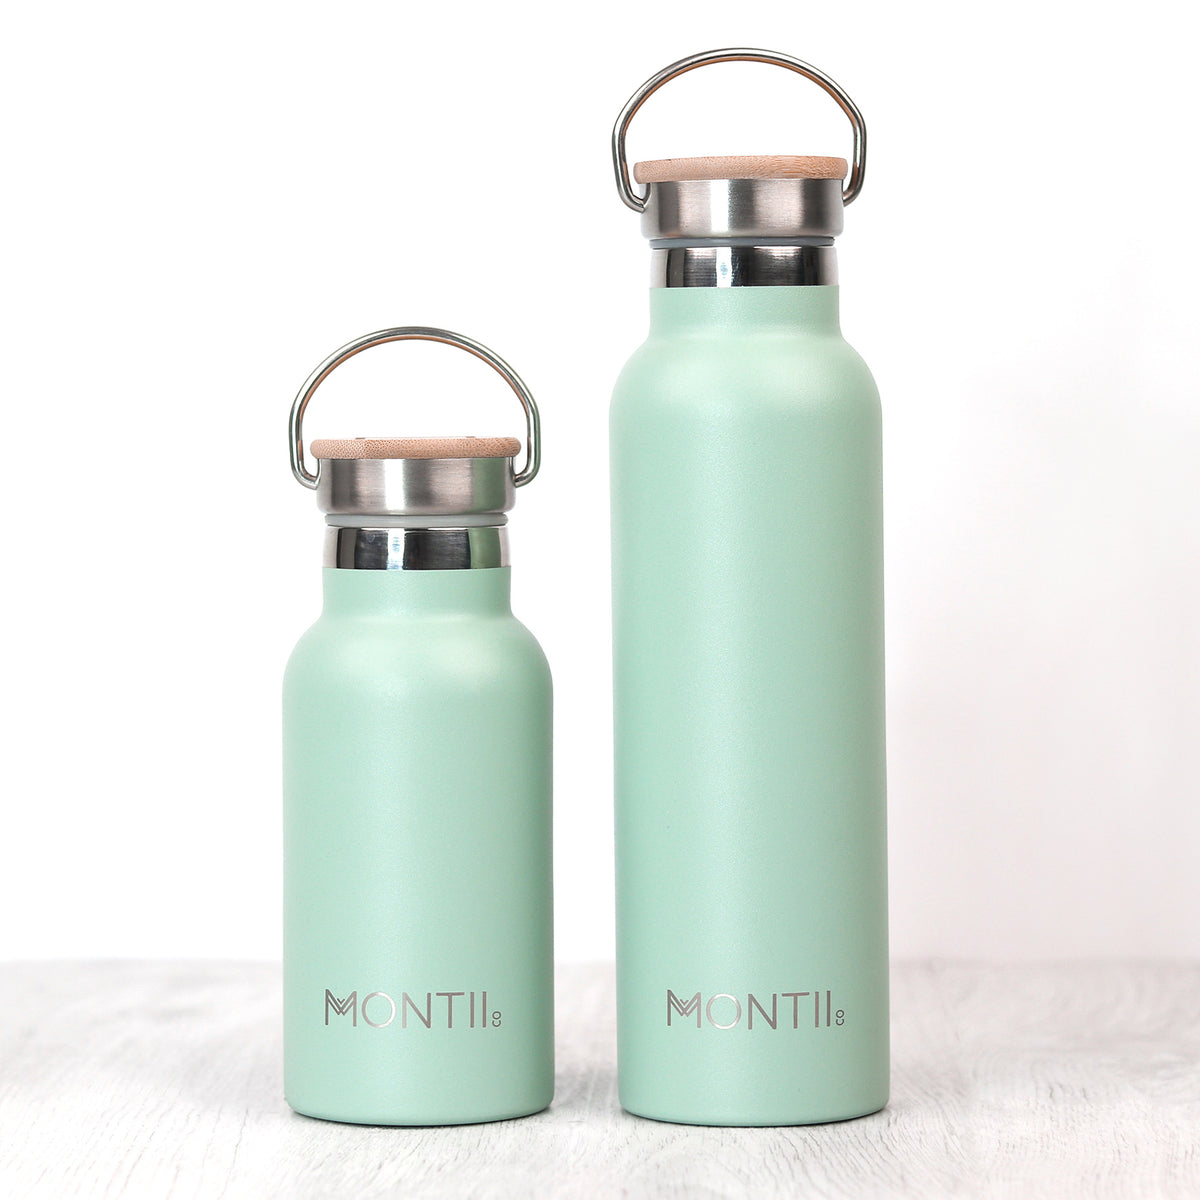 MontiiCo Original Drink Bottle - Eucalyptus-Drink Bottle-Lunchbox Mini